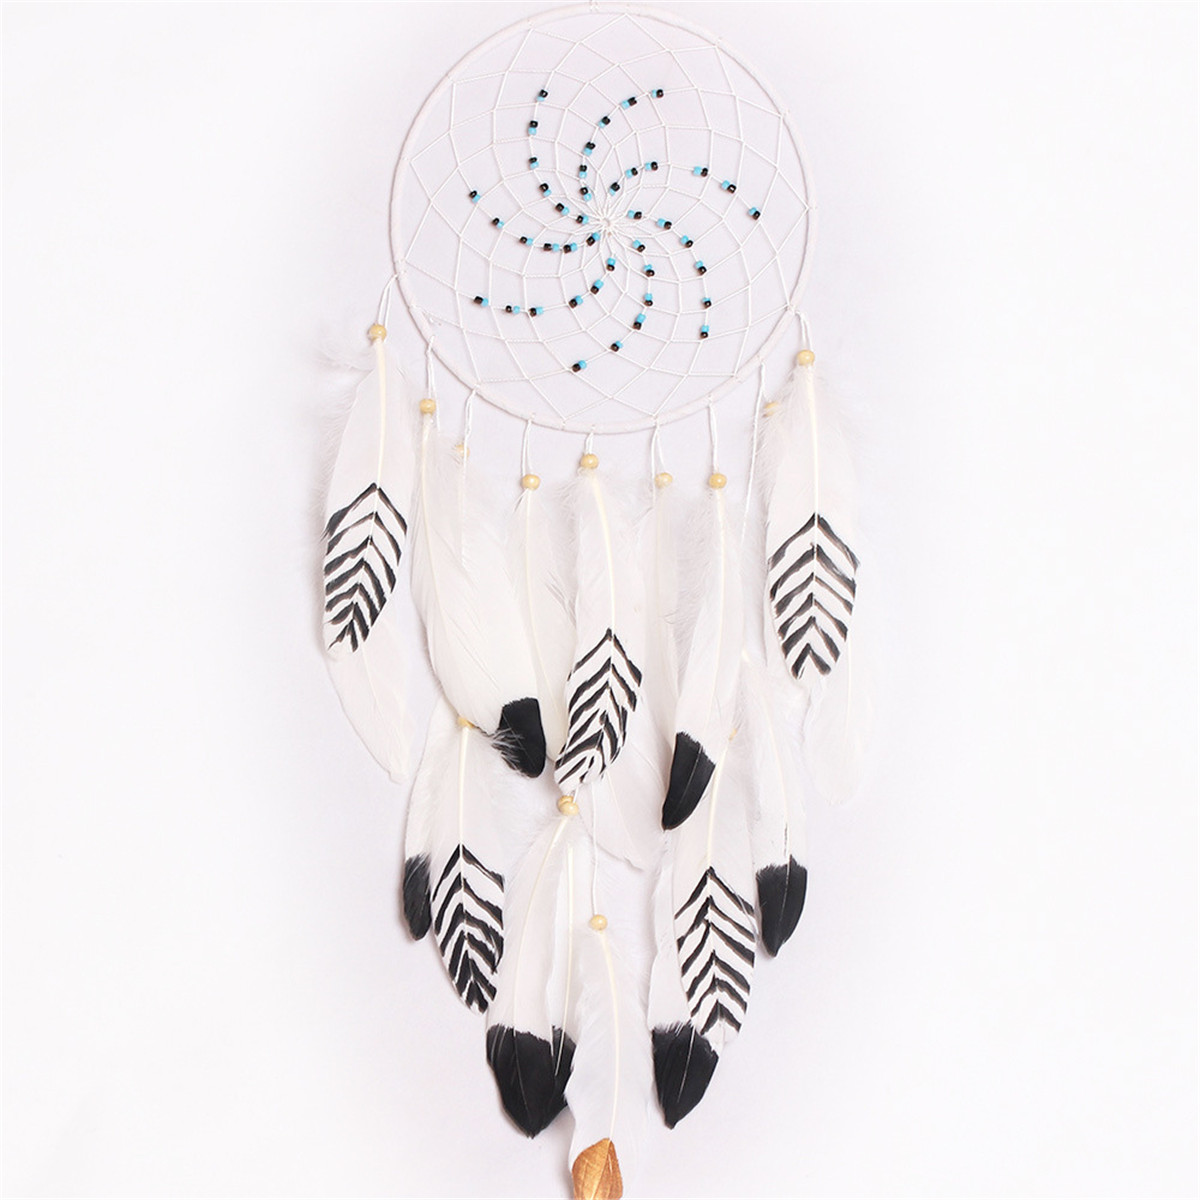 Dreamer White Retro Handmade Indian Dream Catcher Tribal Wall Hanging Decor Ornaments